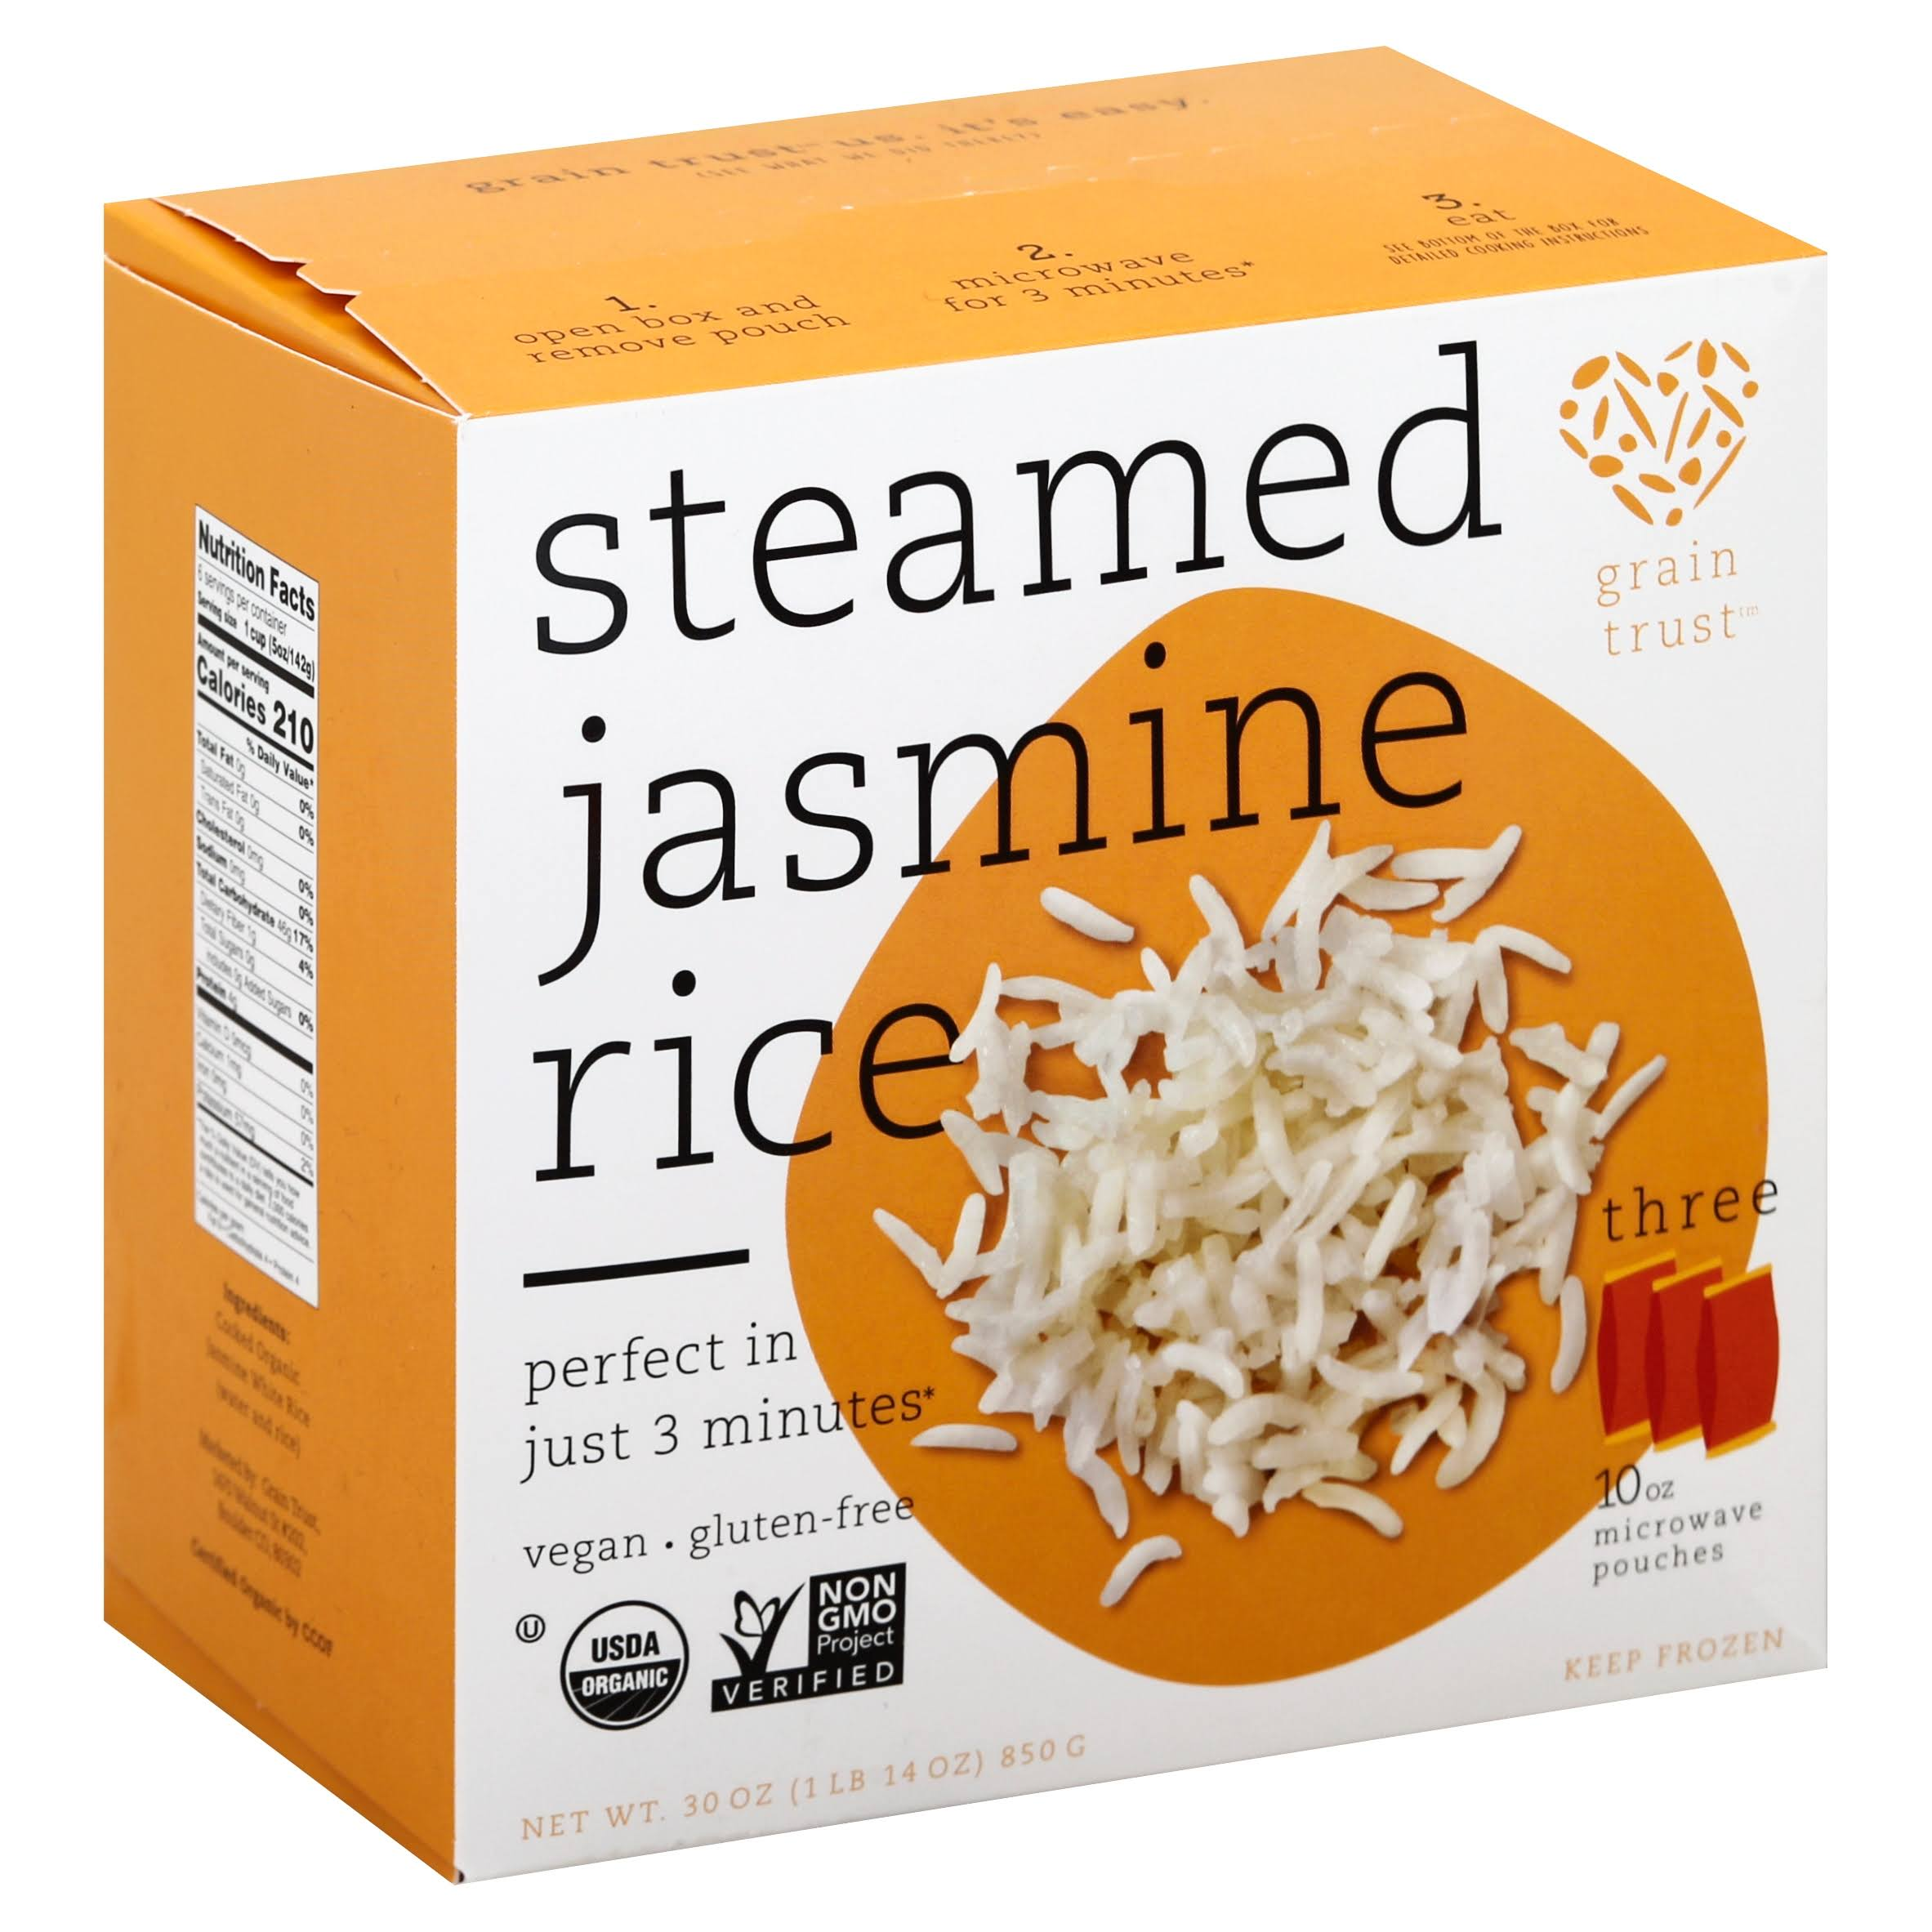 Grain Trust Jasmine Rice, Organic, Microwaveable Pouches - 3 pack, 10 oz pouches